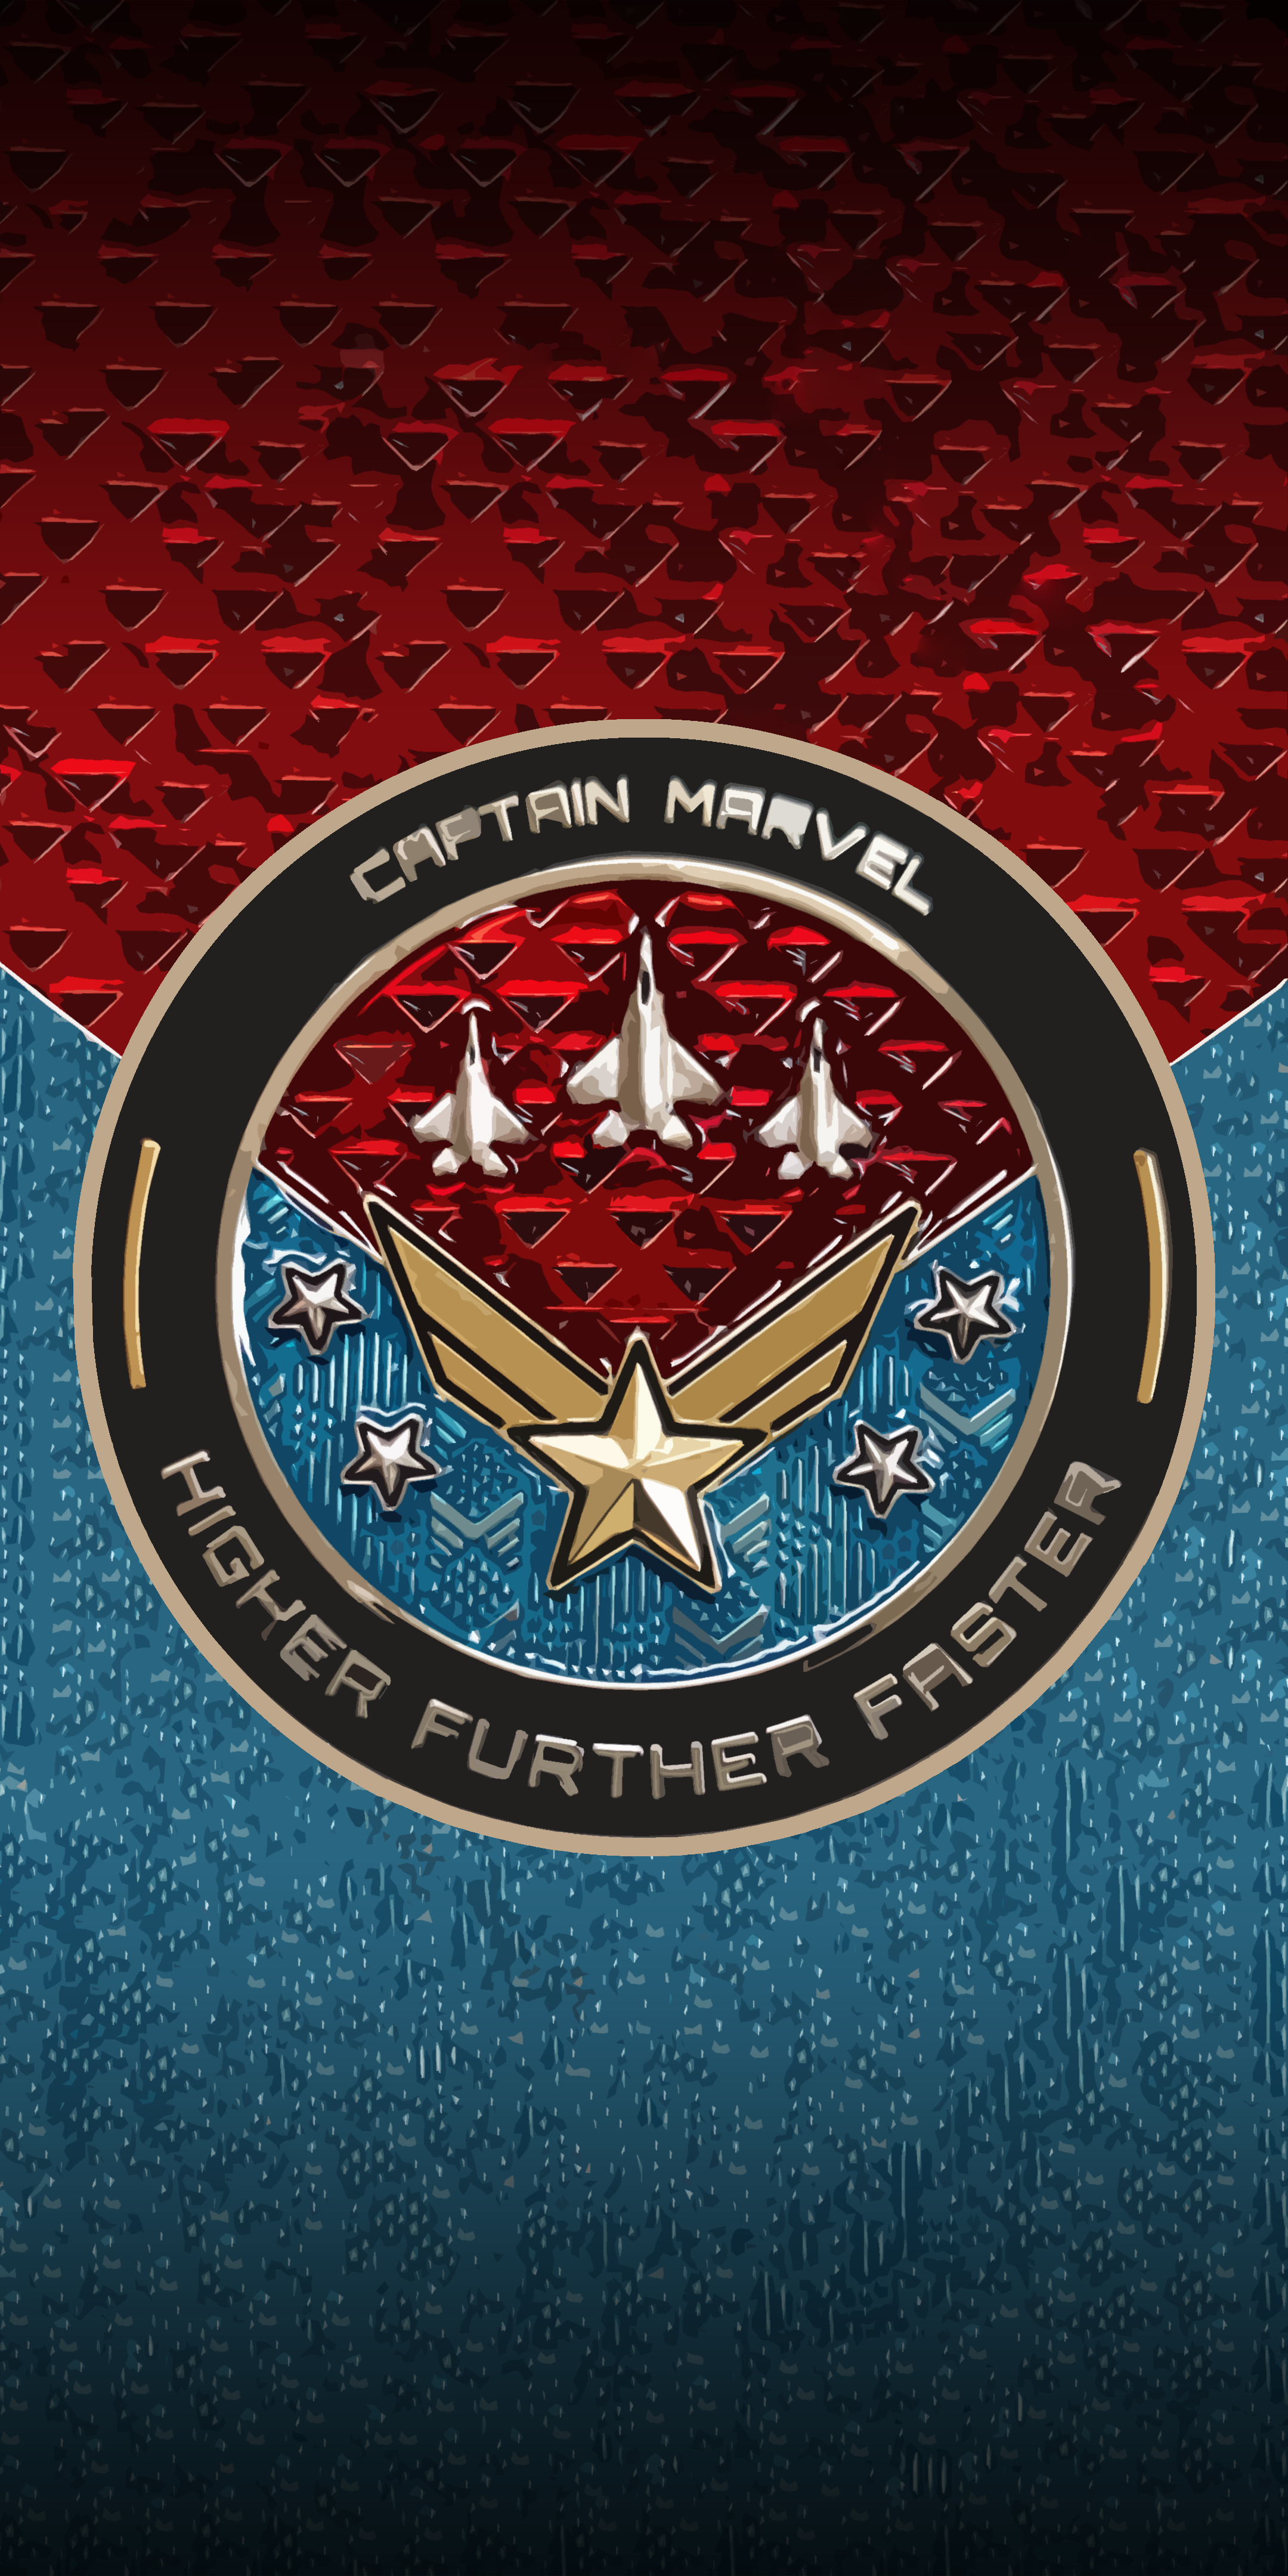 Movies Wallpaper For Iphone From Uploaded By User Moviewallpaper Marvel Wallpaper Hd Marvel Wallpaper Captain Marvel